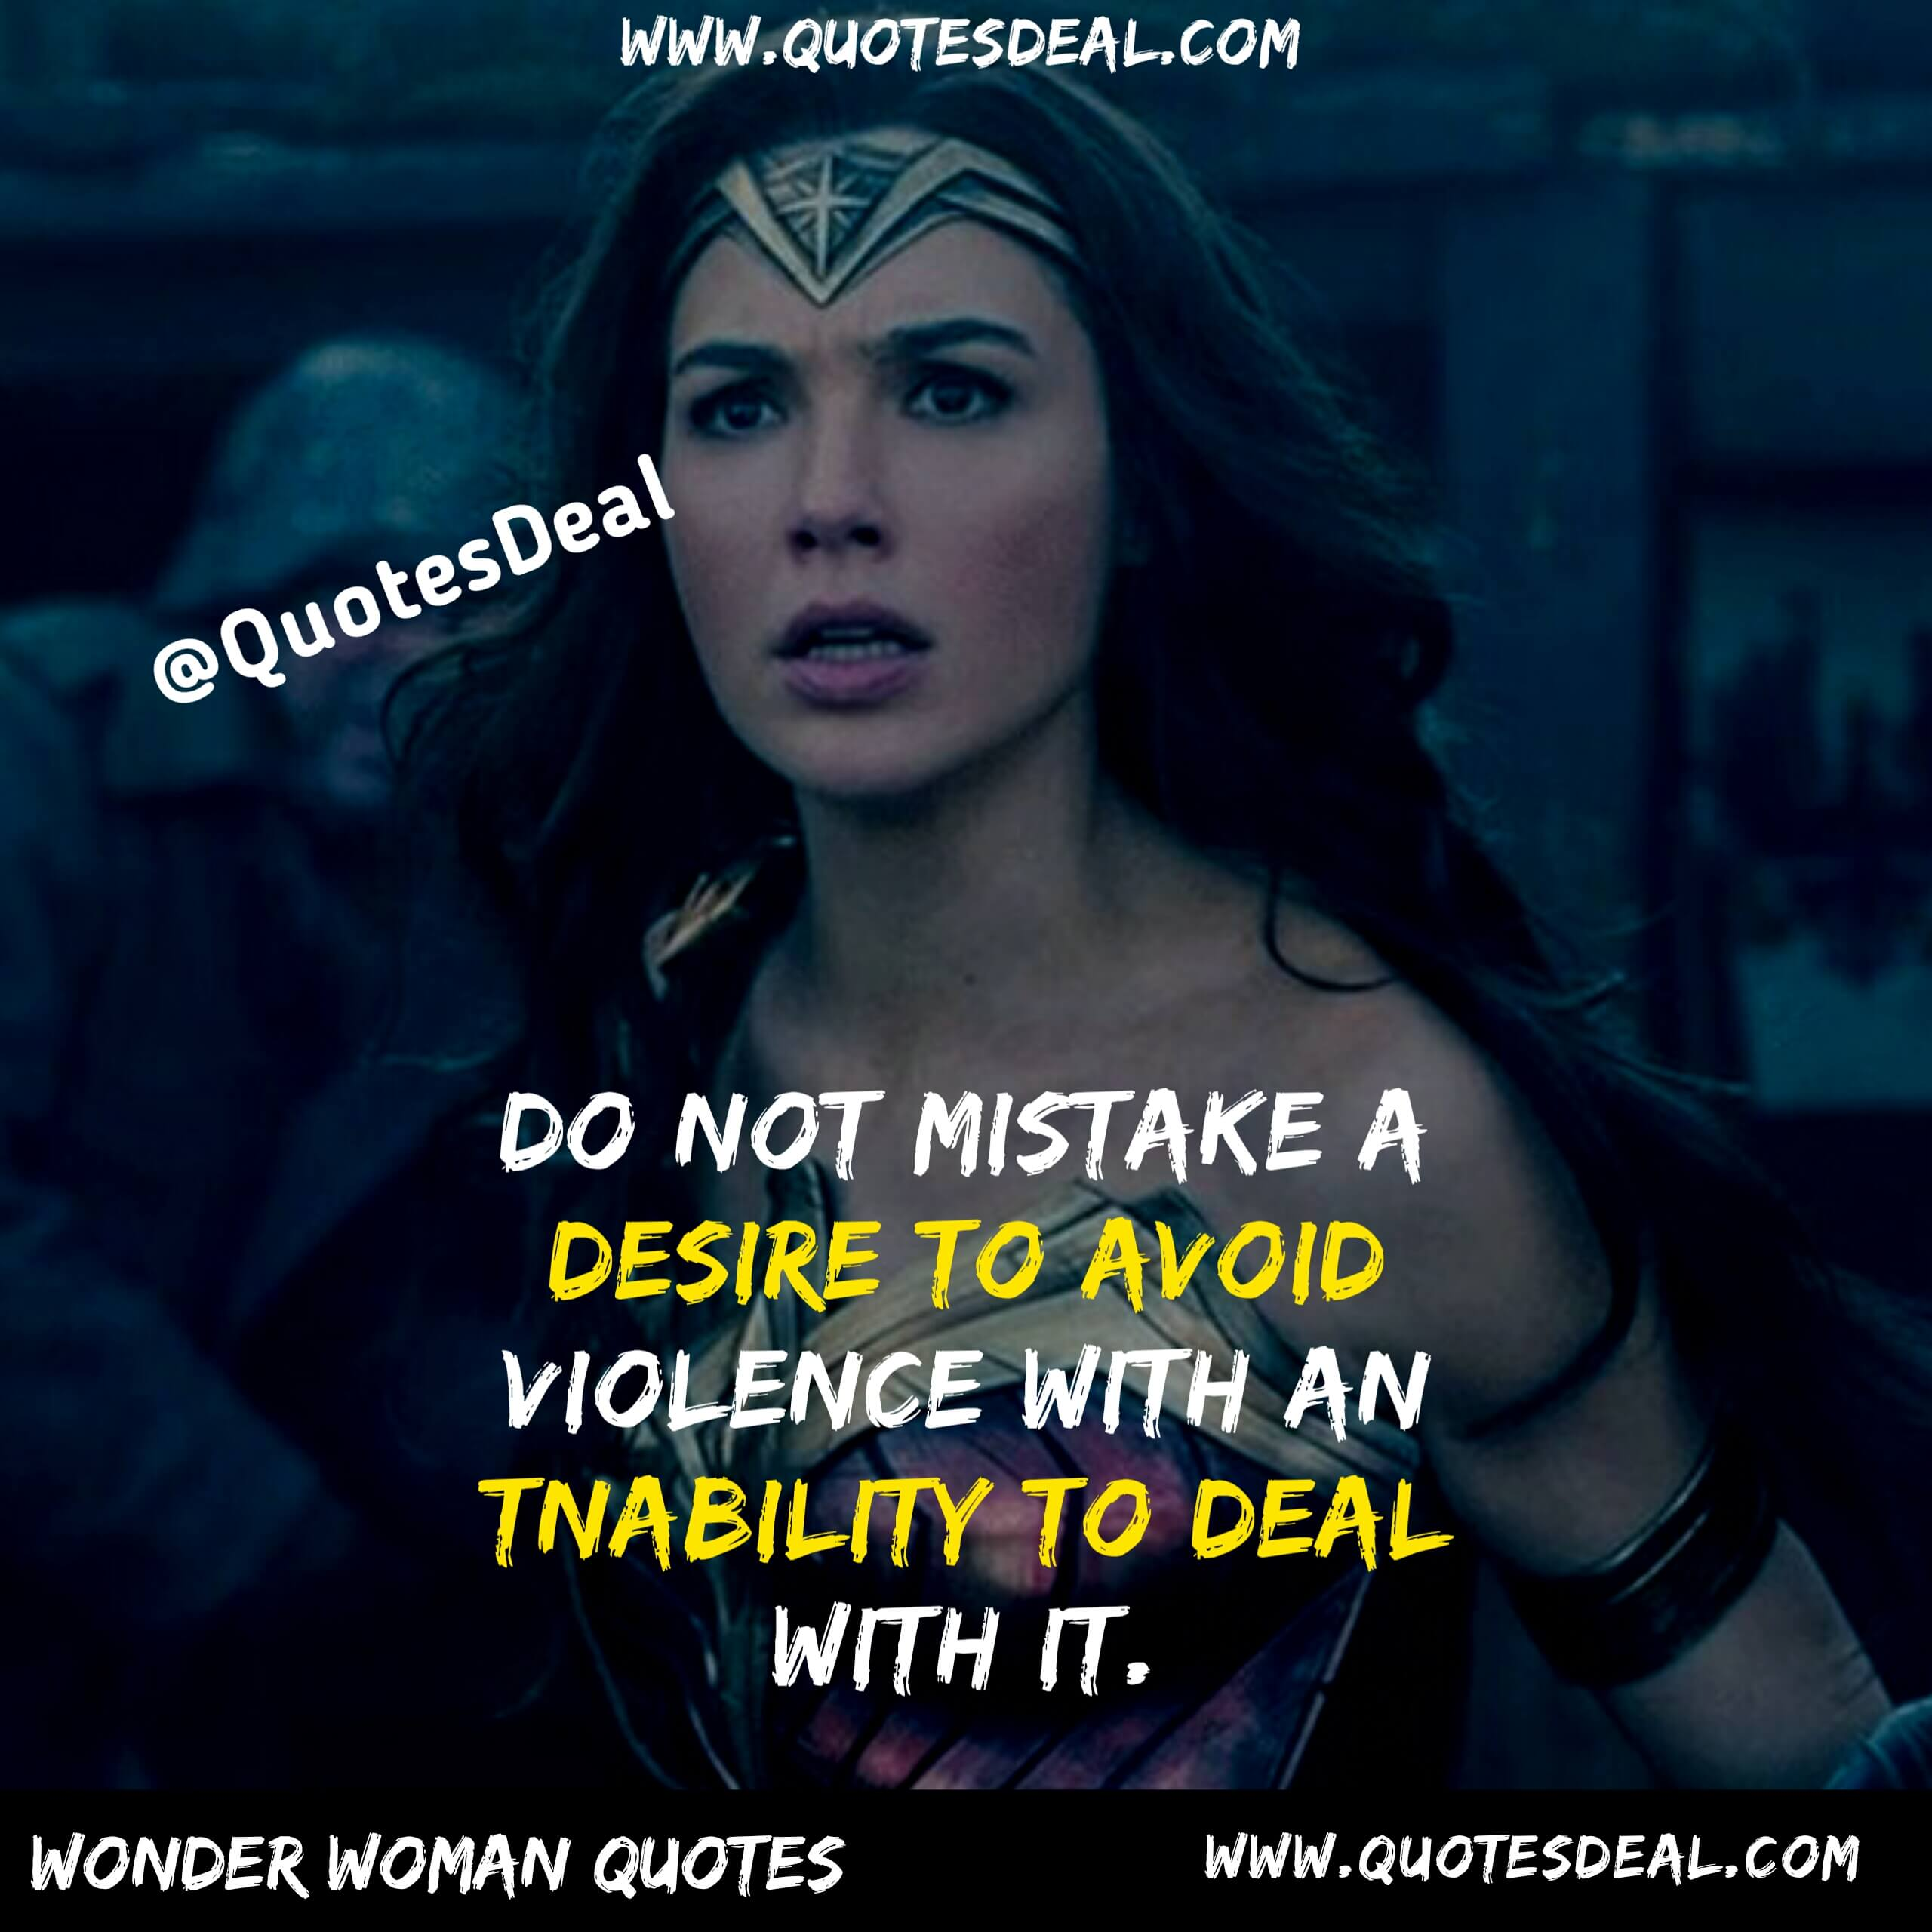 Do not mistake